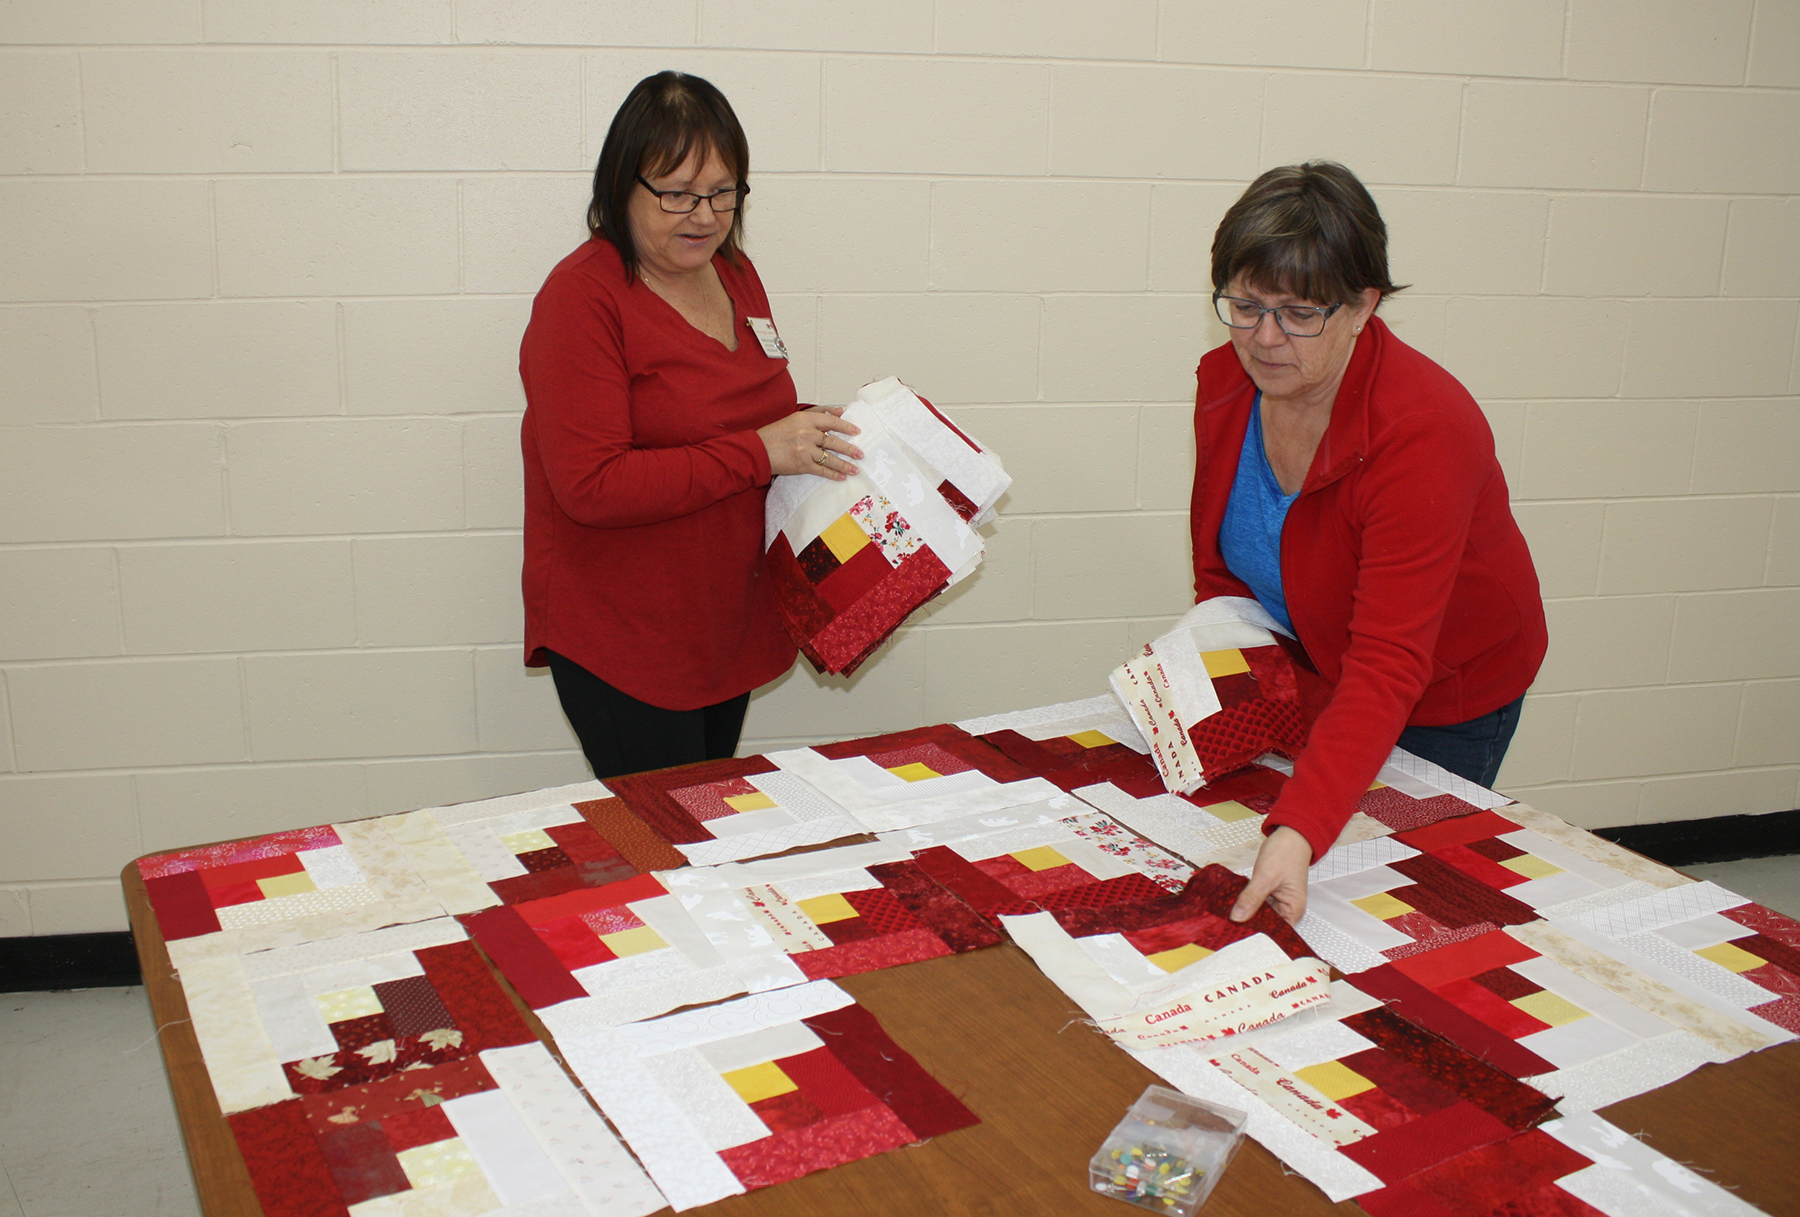 Brenda Hulan, left, and Mary Ewing lay out the pattern of colours and prints for the next Quilts of Valour project being assembled by a Greenwood-based group of program volunteers. PHOTO: Sara White